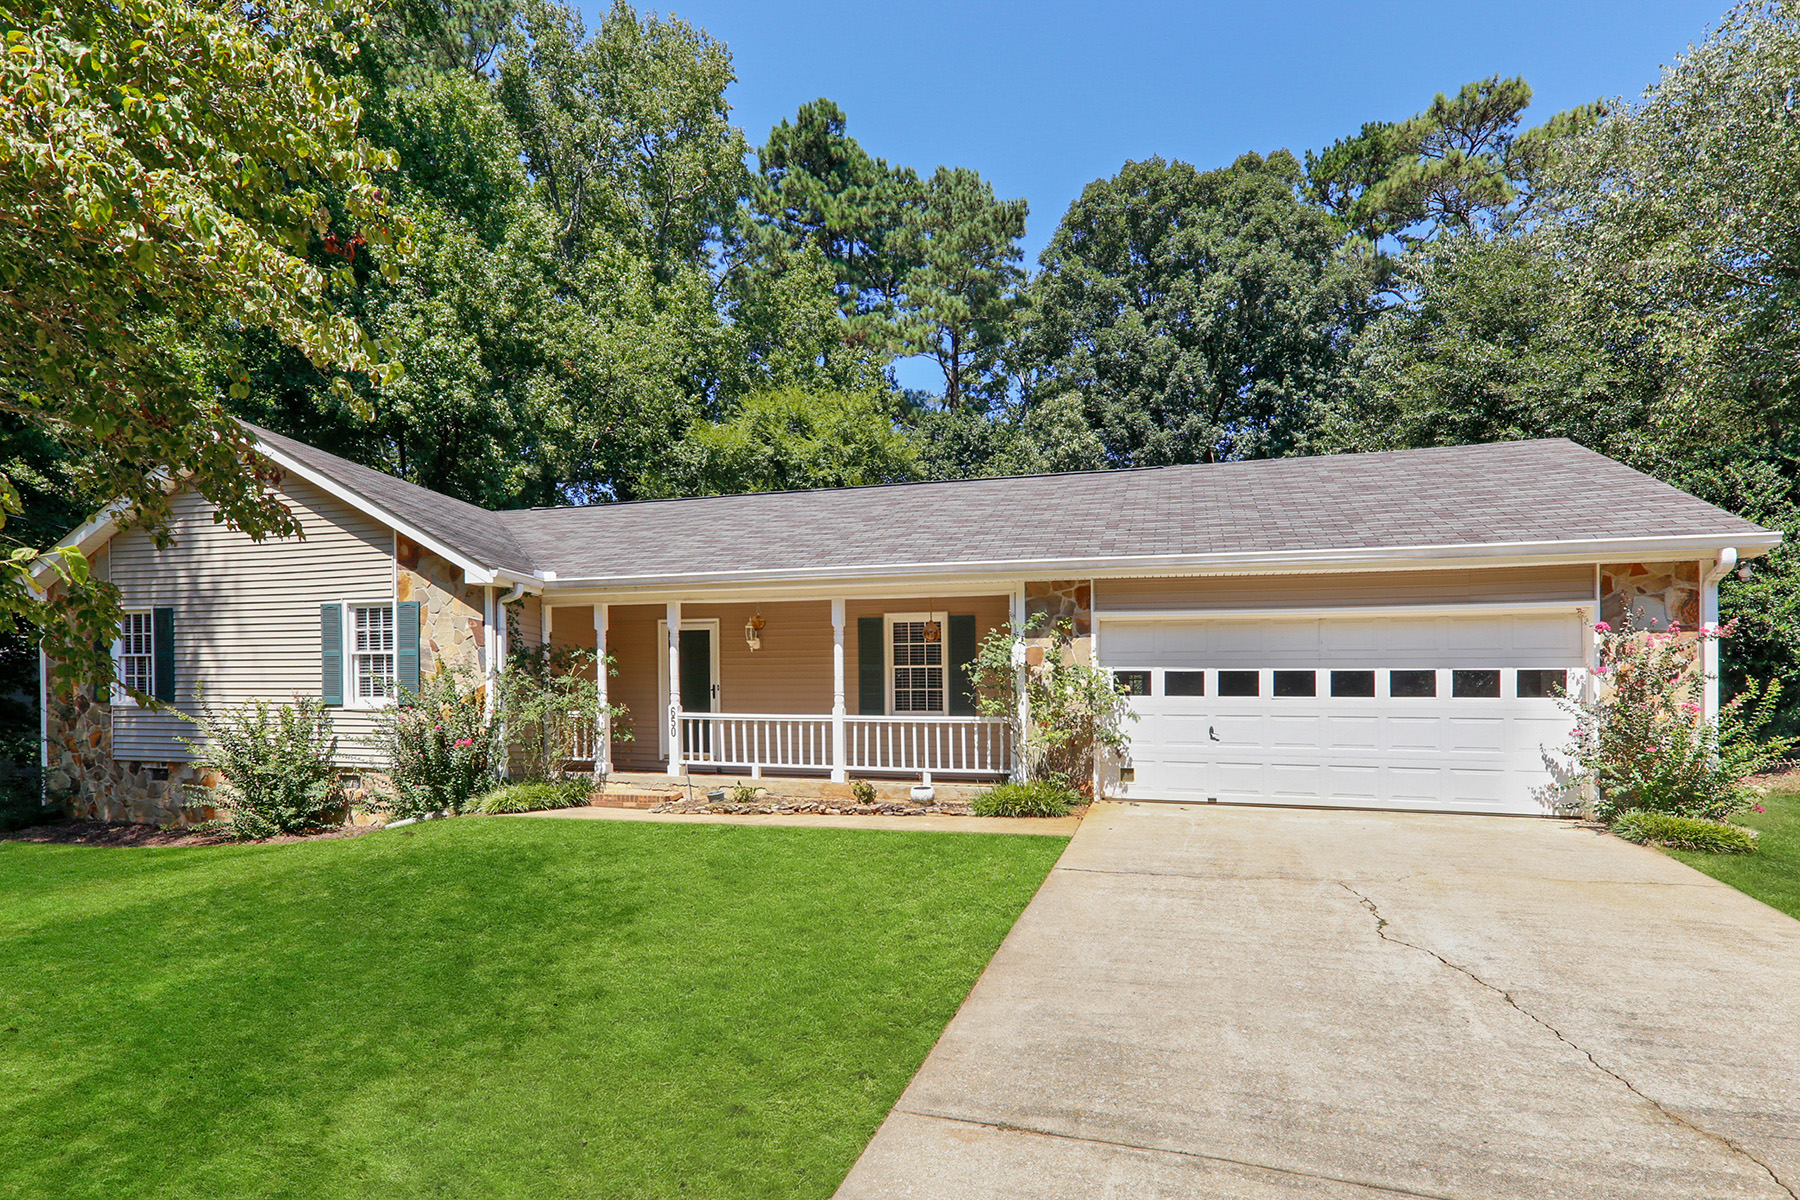 Single Family Homes のために 売買 アット Cozy Spring Forest Ranch 650 Spring Forest Dr, Lawrenceville, ジョージア 30043 アメリカ